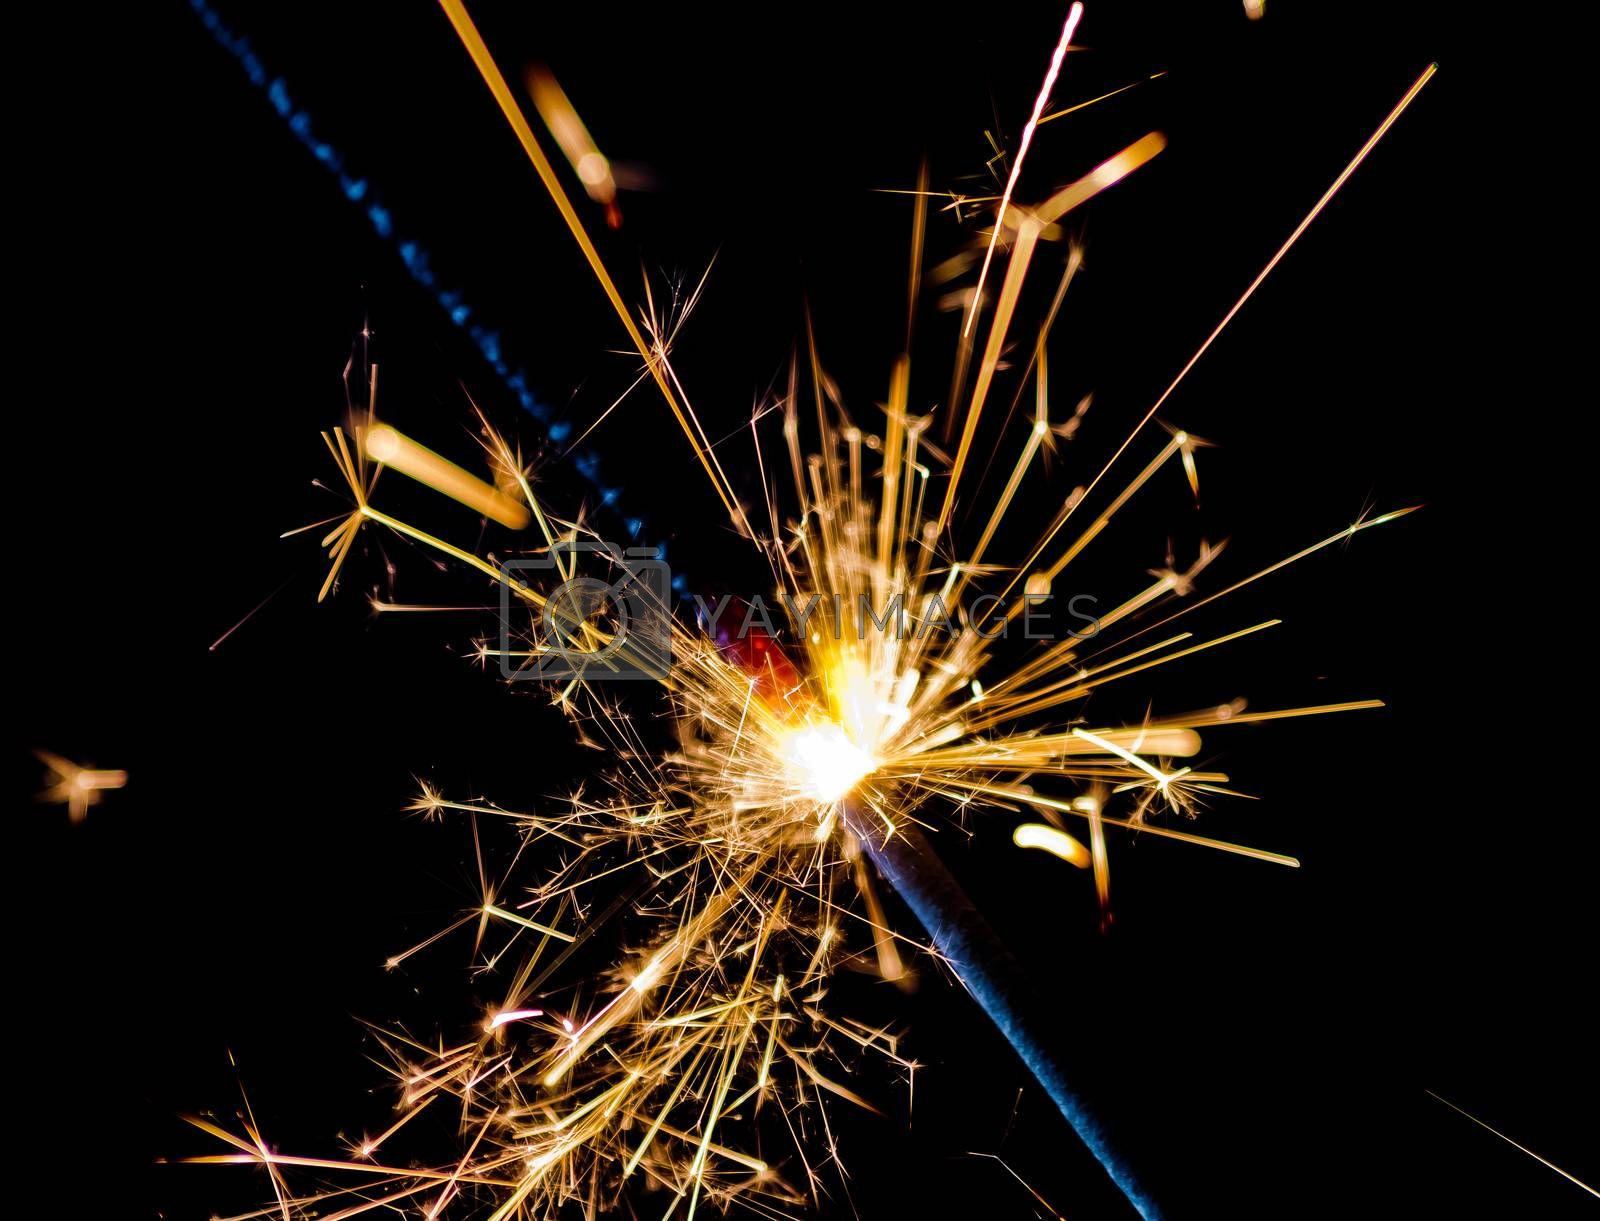 close-up of firework sparkler burning on black background, congratulation greeting  party happy new year,  christmas celebration concept